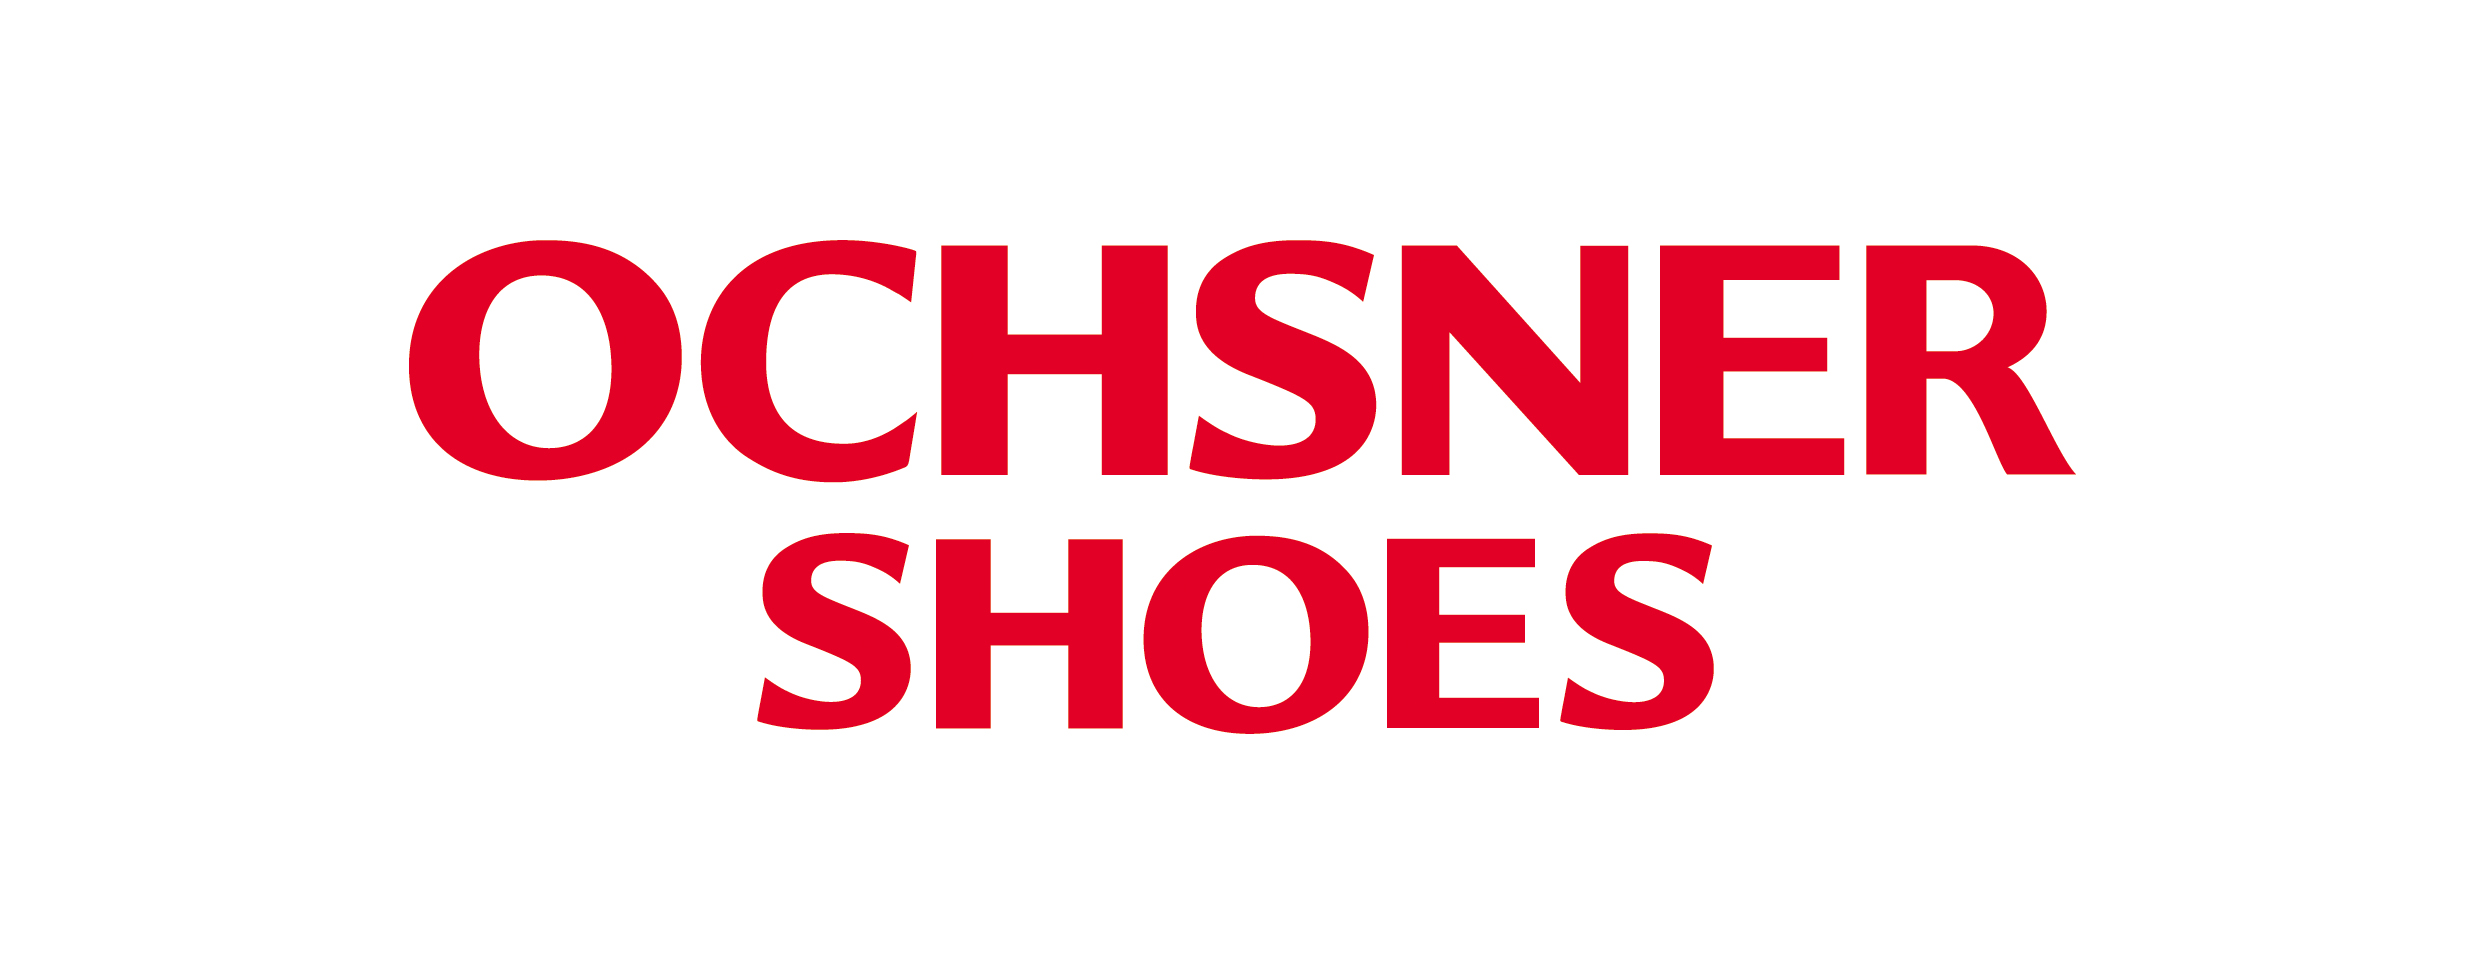 RZ Ochsner Shoes Logo RGB